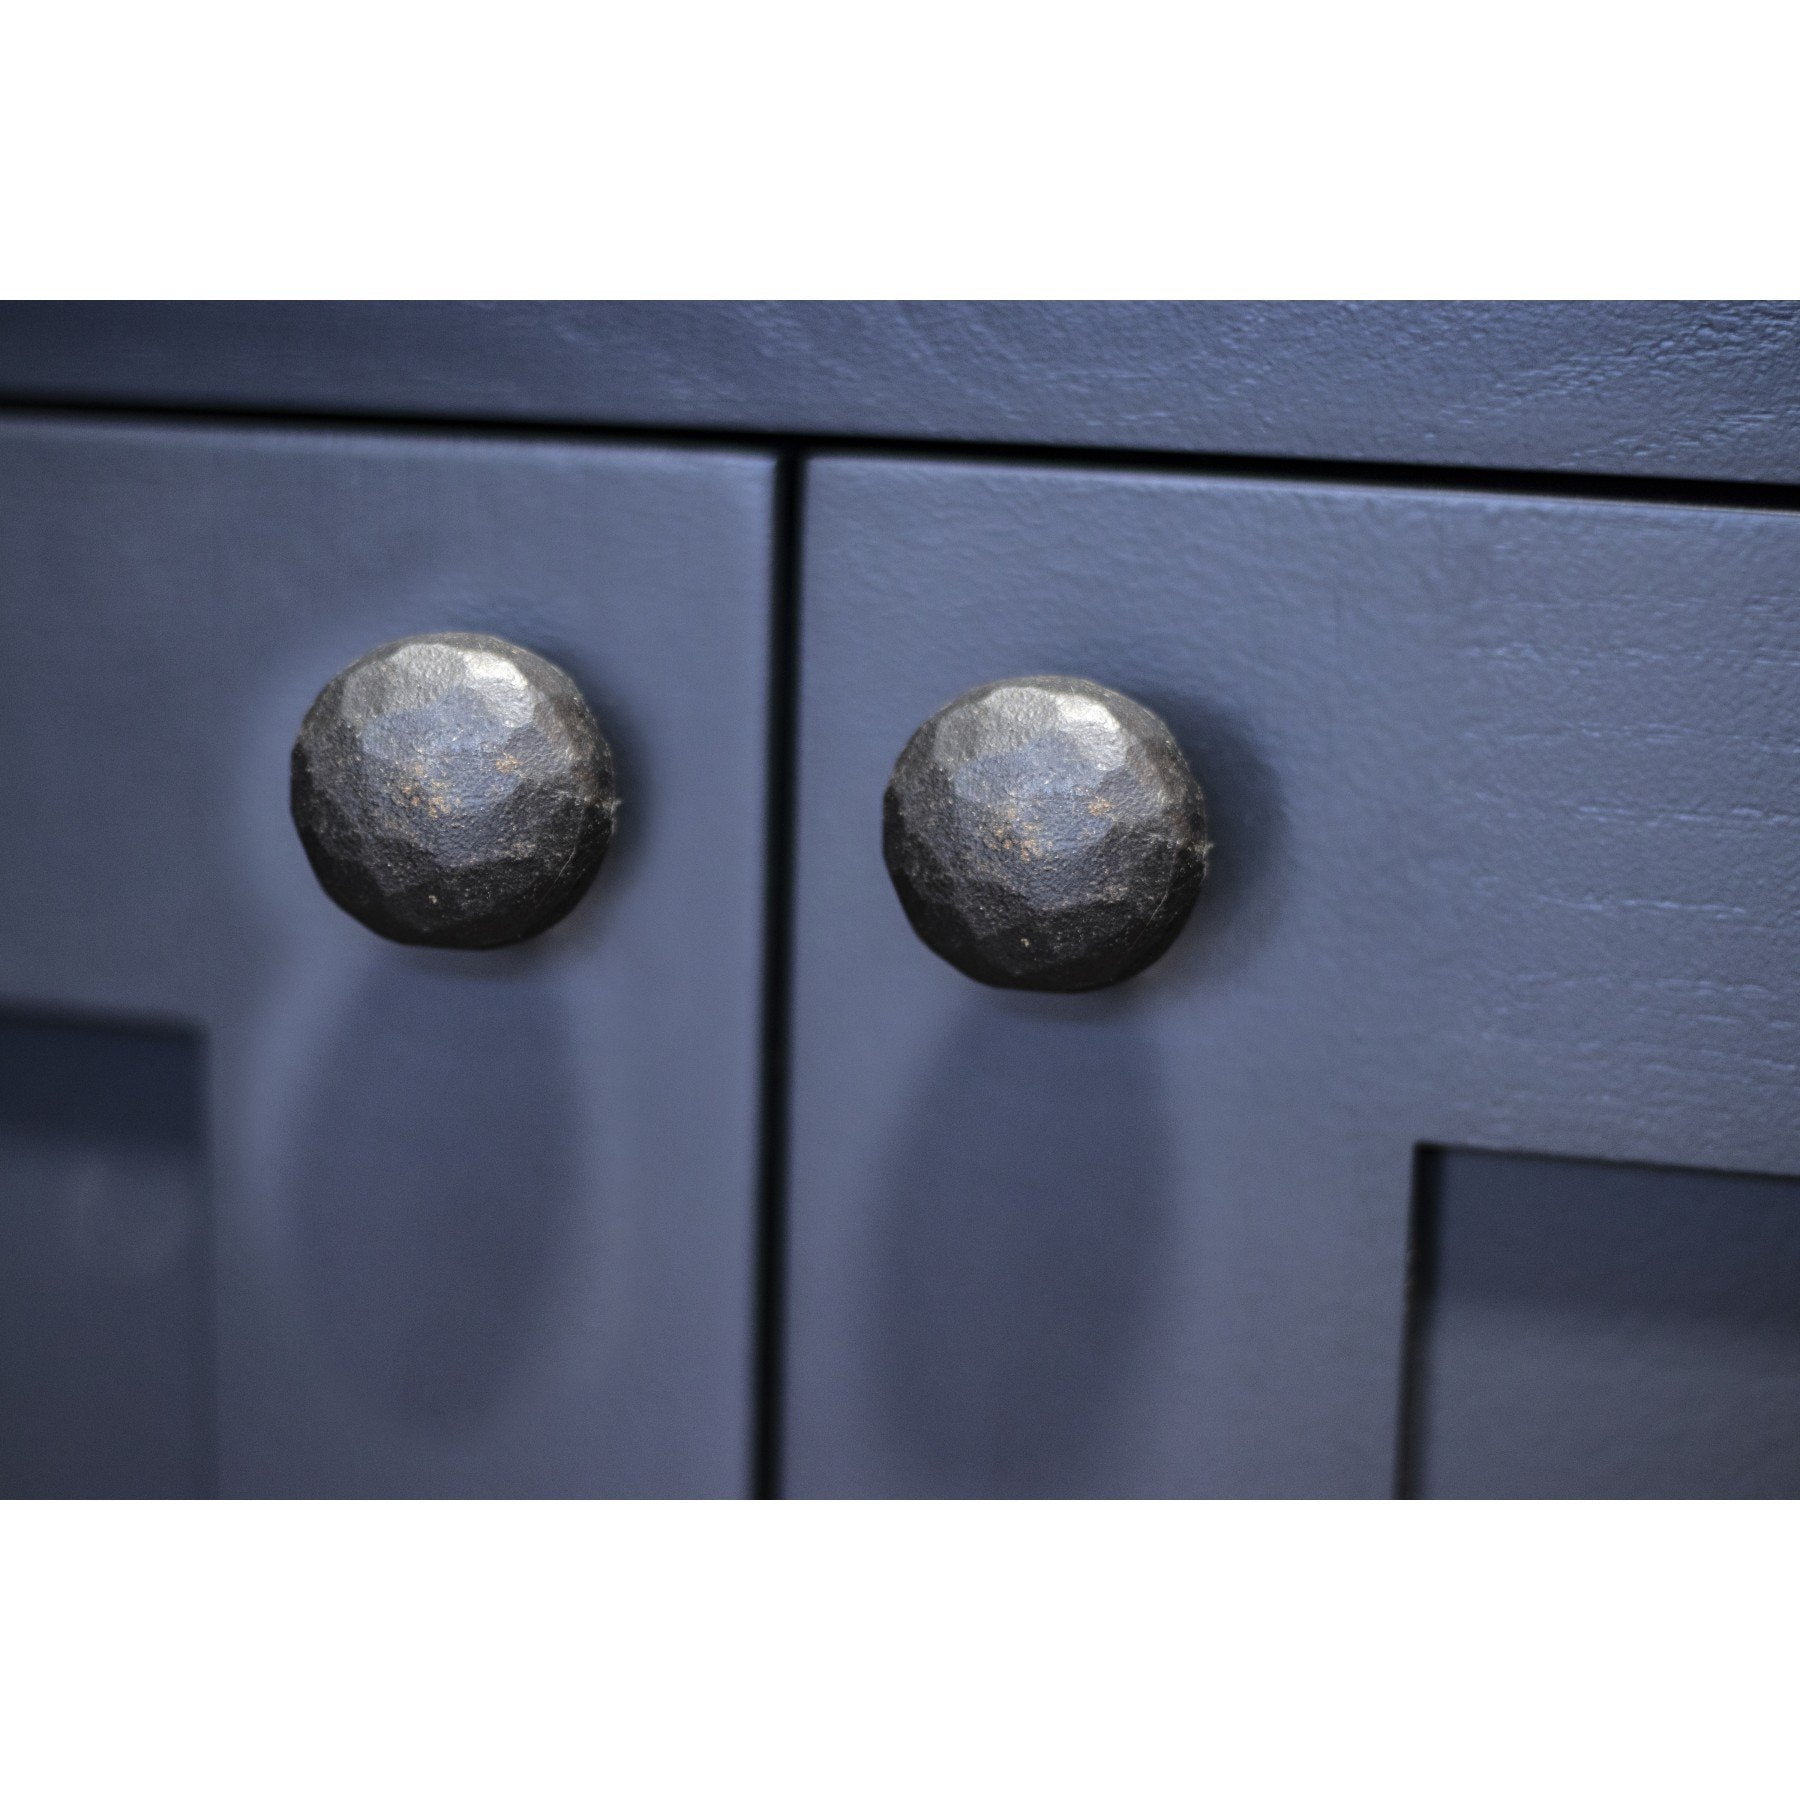 Beeswax Hammered Knobs - Small